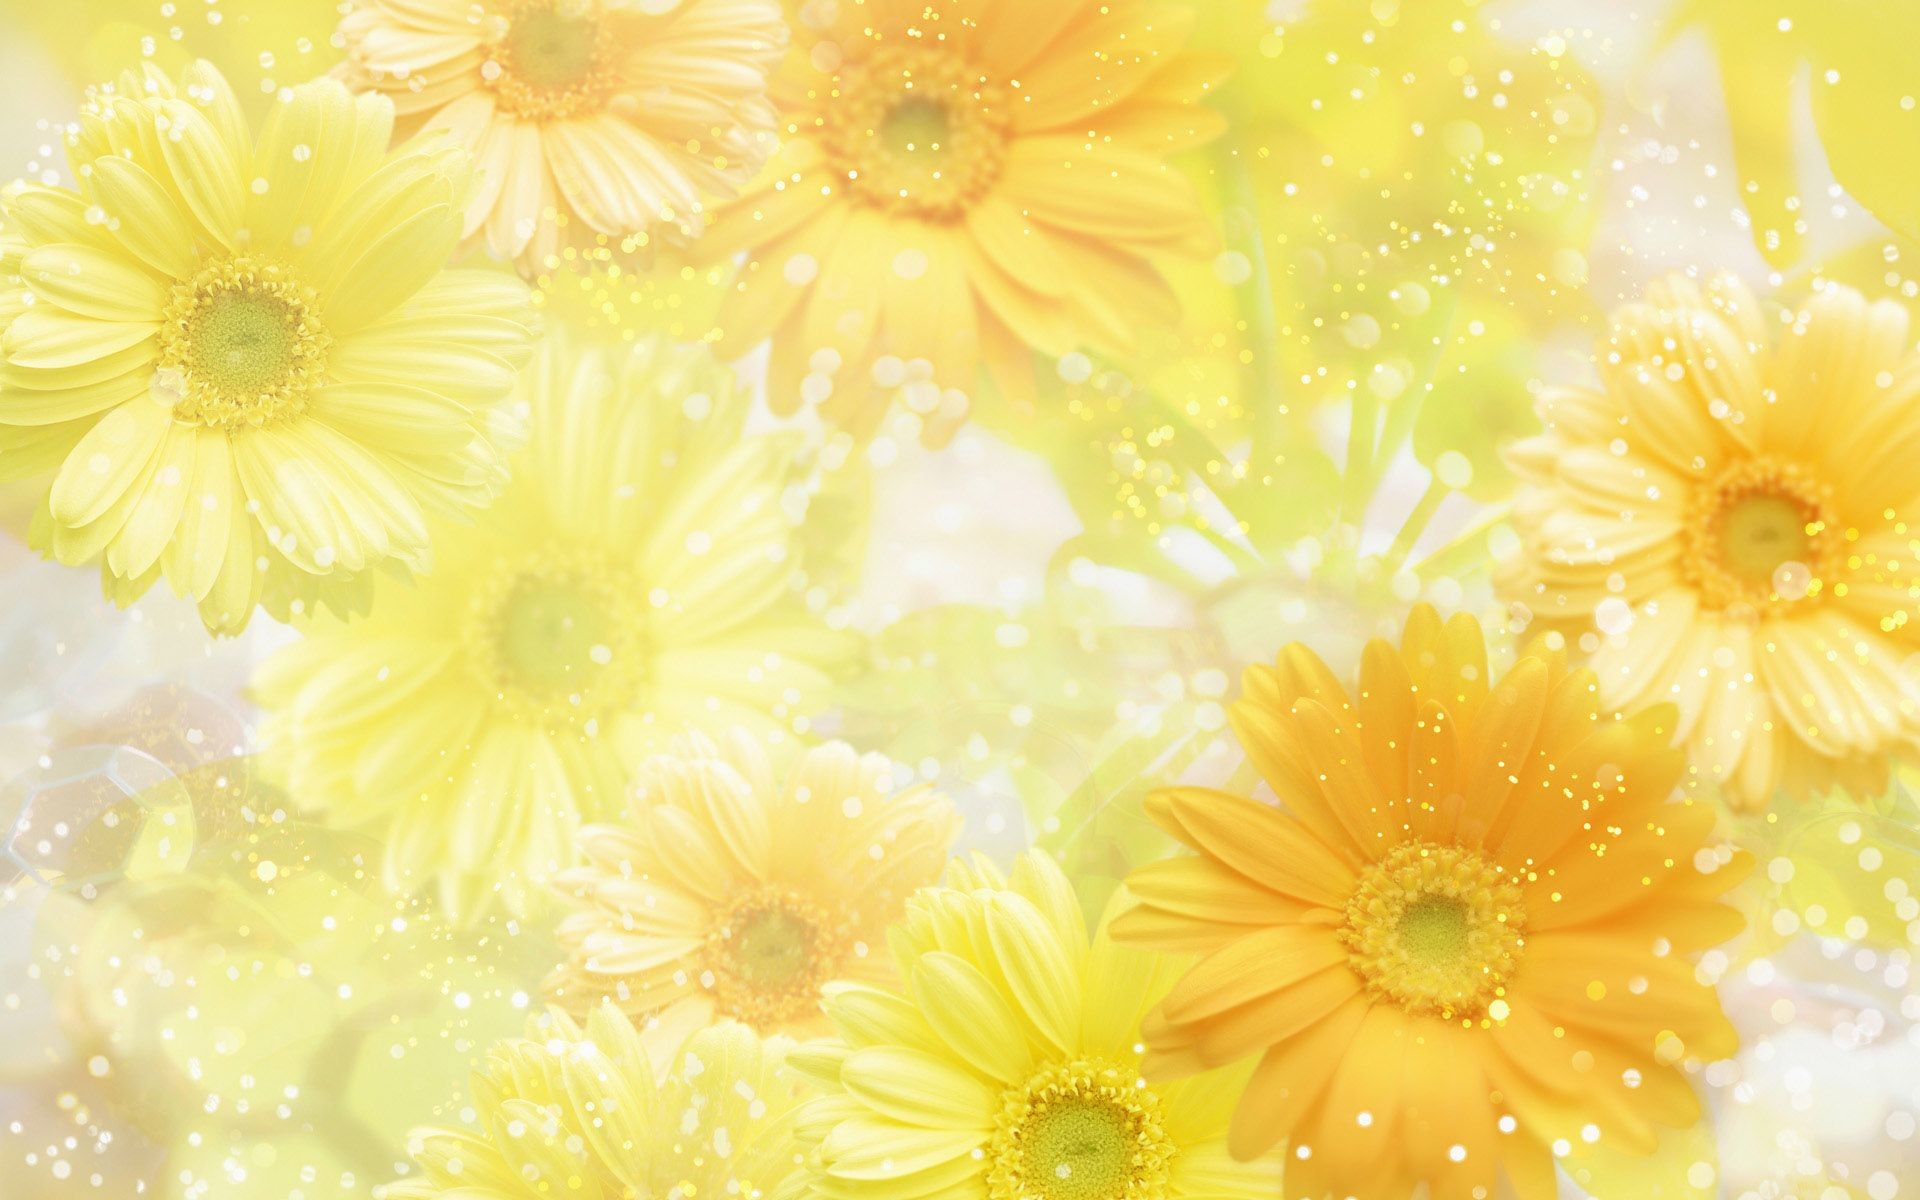 Res: 1920x1200, spring   spring wallpapers hd desktop background free flowers spring  wallpapers .